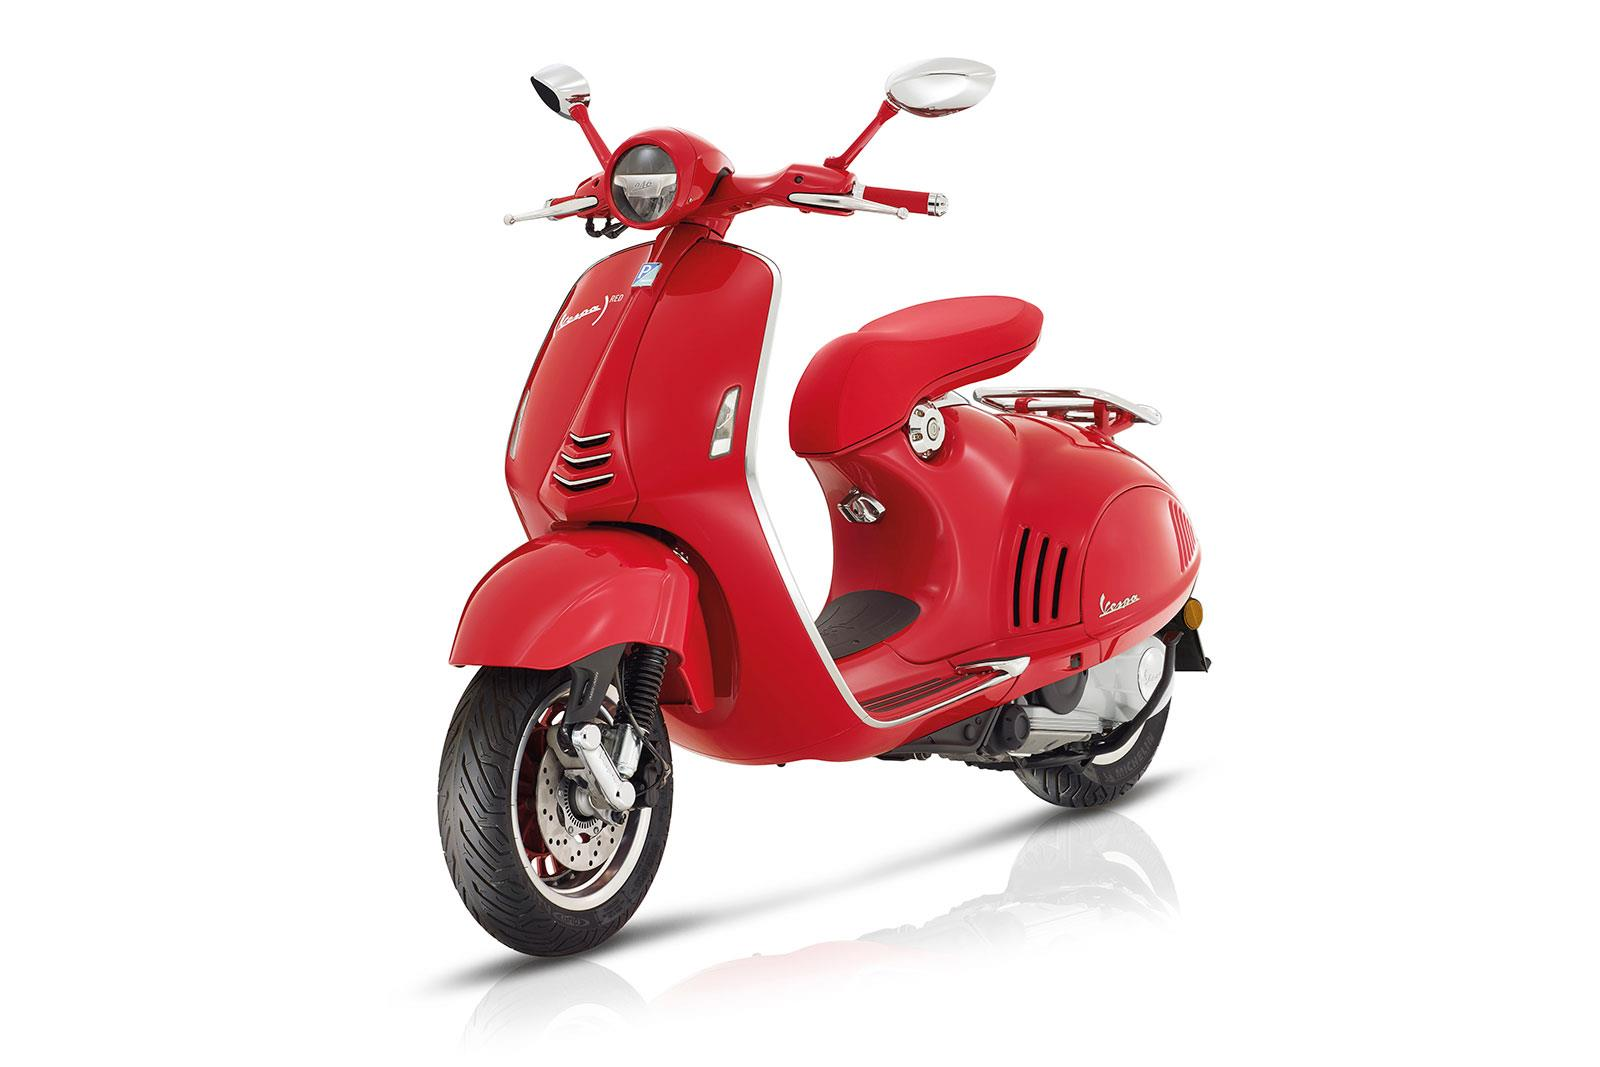 Where To Buy A Vespa In London